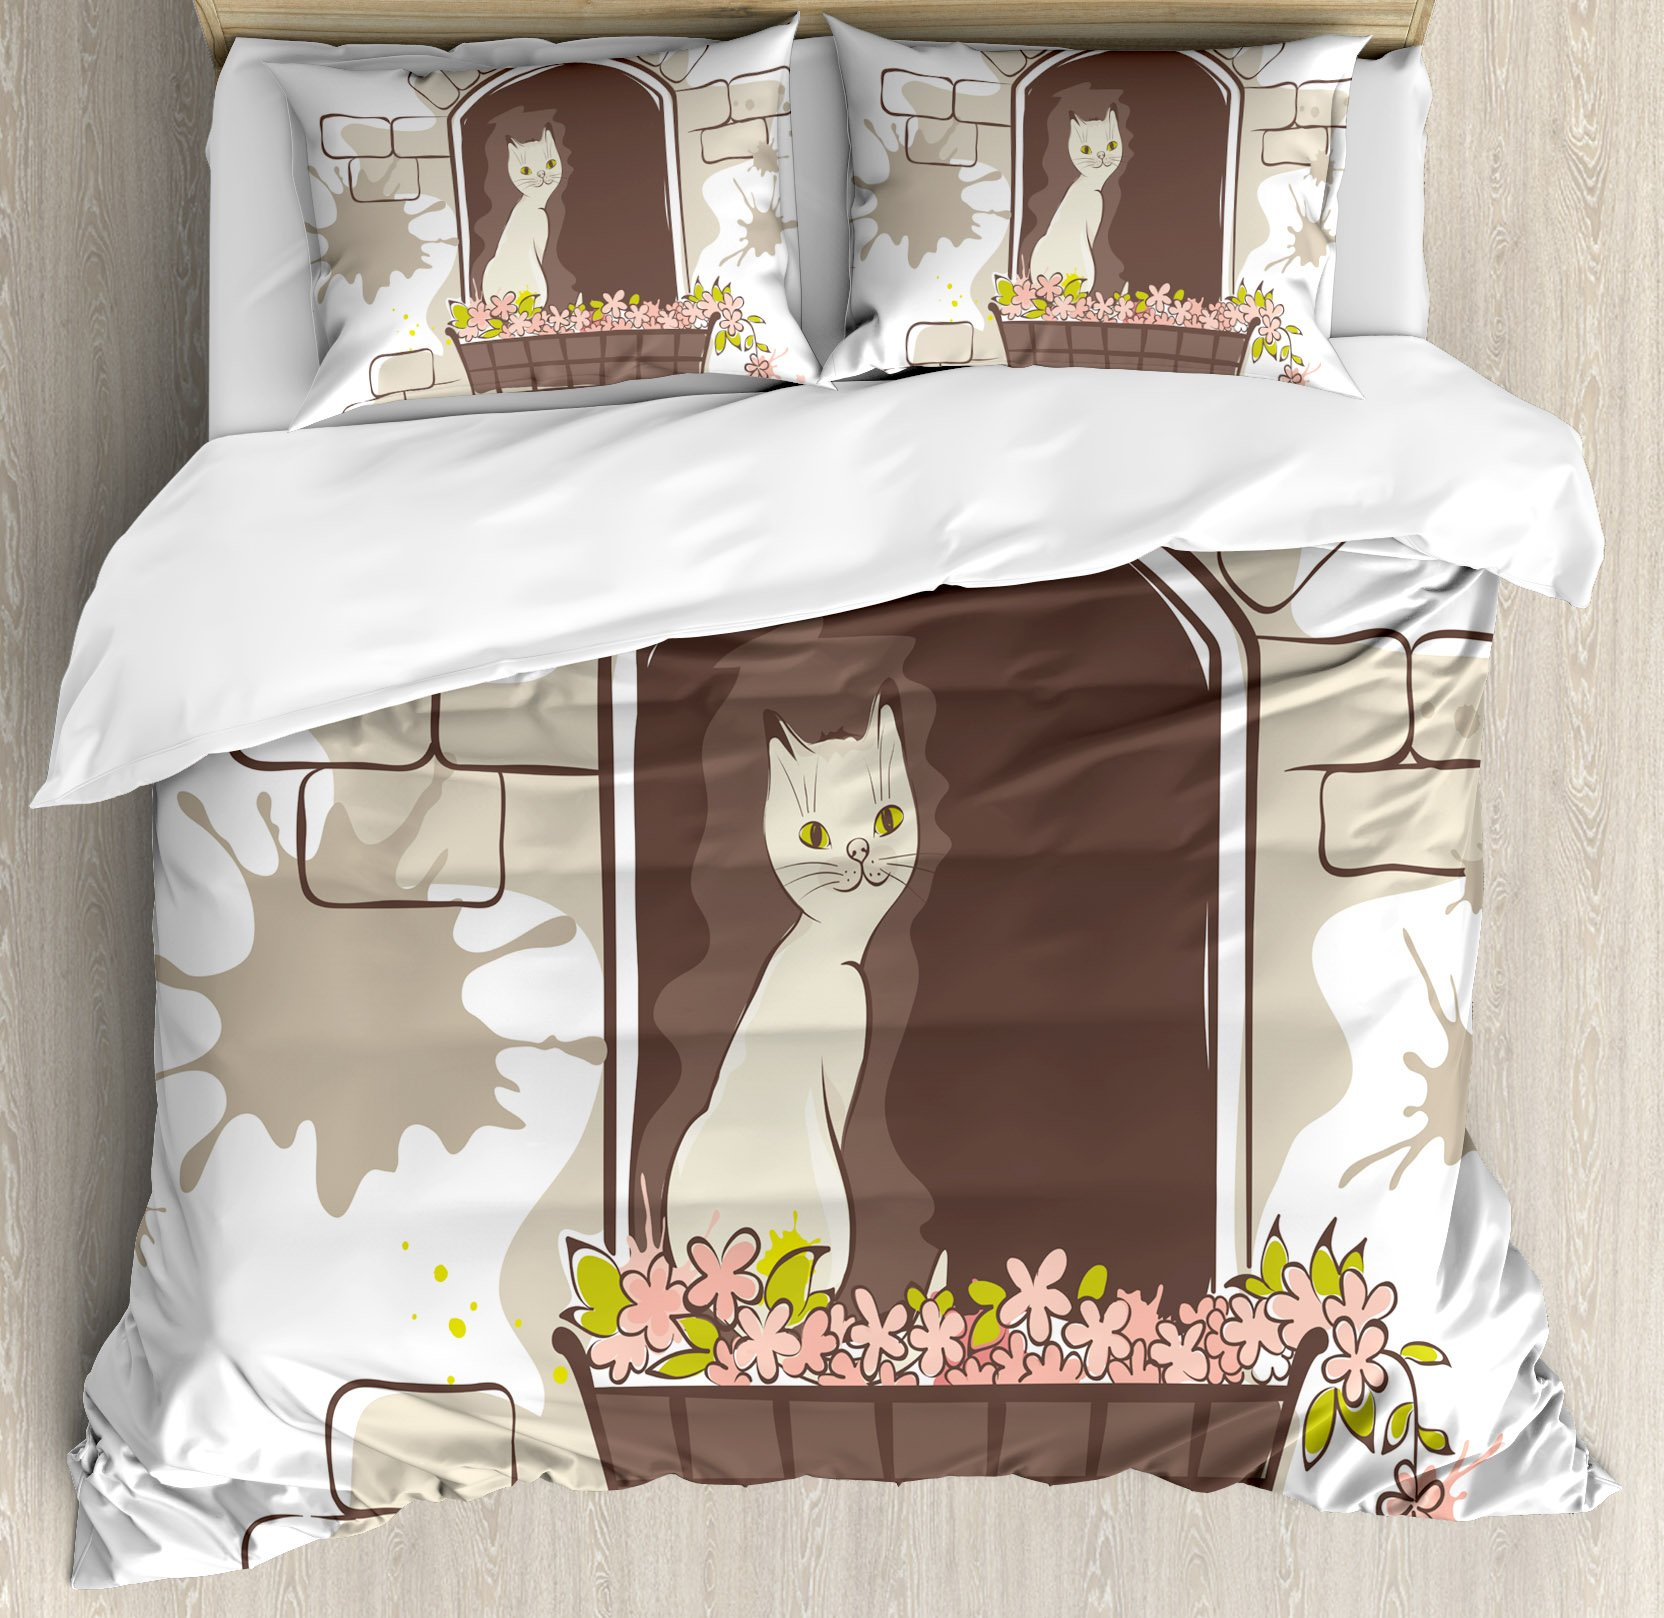 Landscape Duvet Cover Set by Ambesonne, Cartoon Animal Cat Pet Smile Positive Morning Apartment Window Artwork, 3 Piece Bedding Set with Pillow Shams, King Size, Umber Black and White